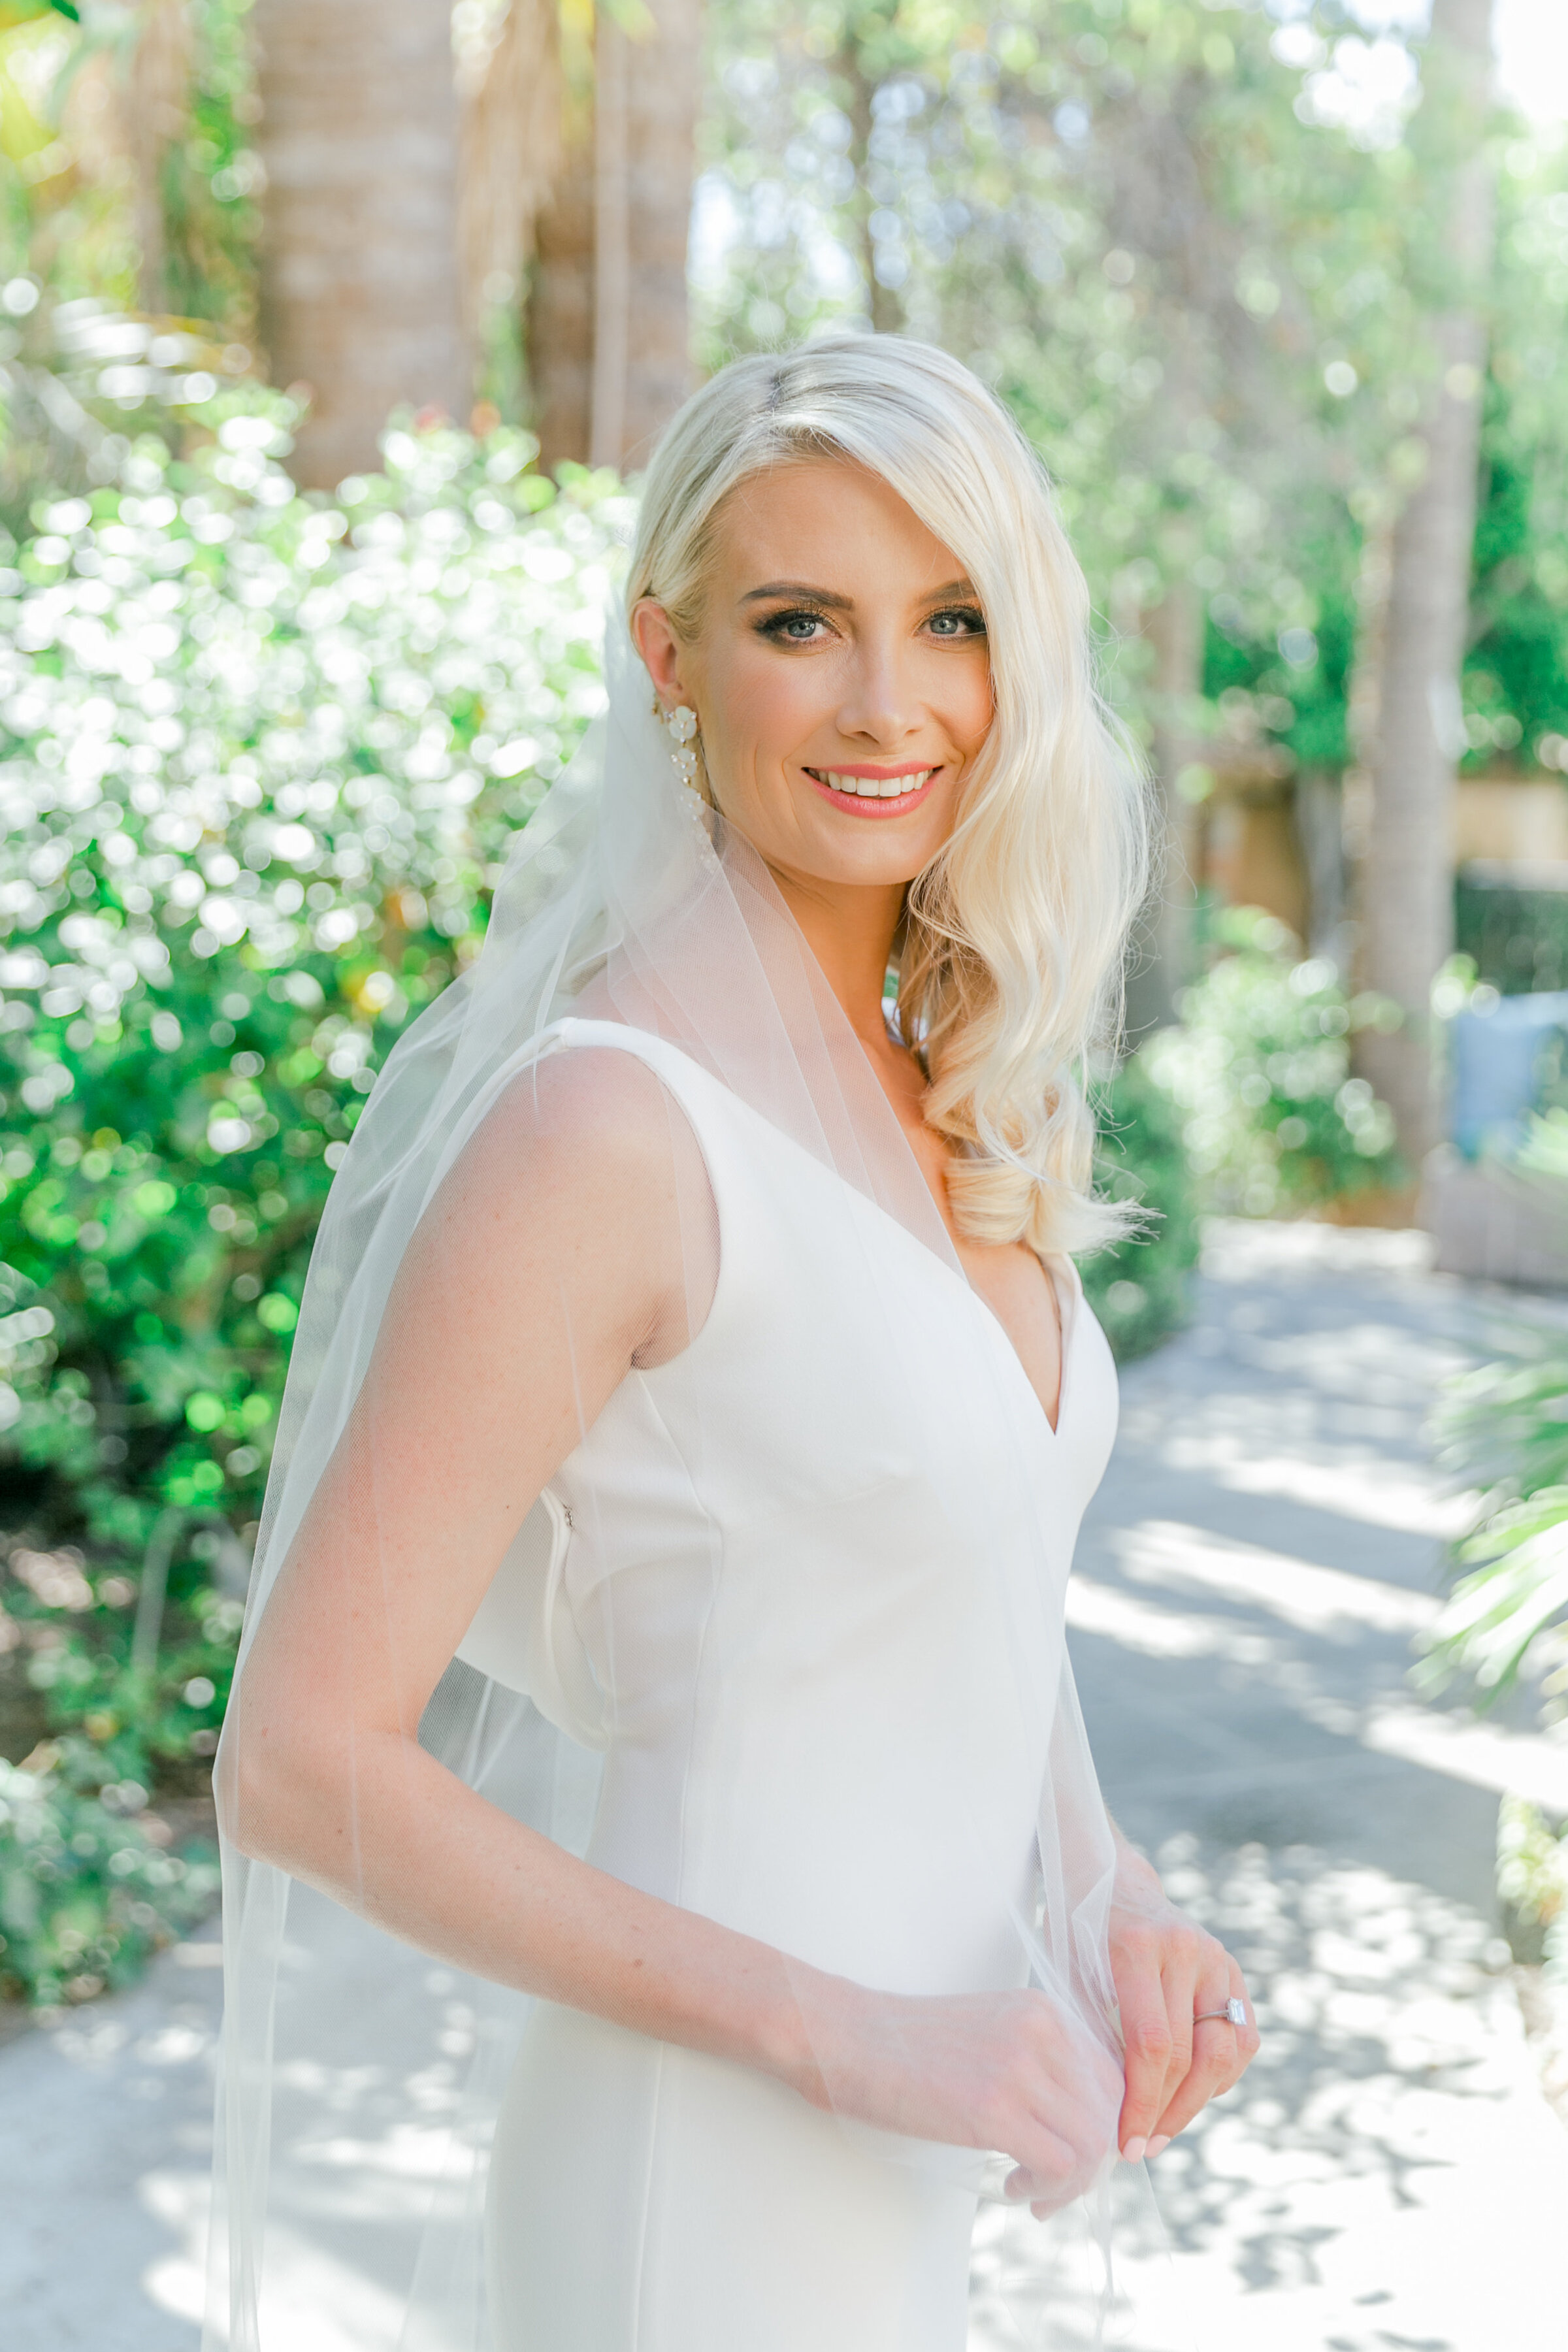 Karlie Colleen Photography - Arizona Wedding - Royal Palms Resort- Alex & Alex-44